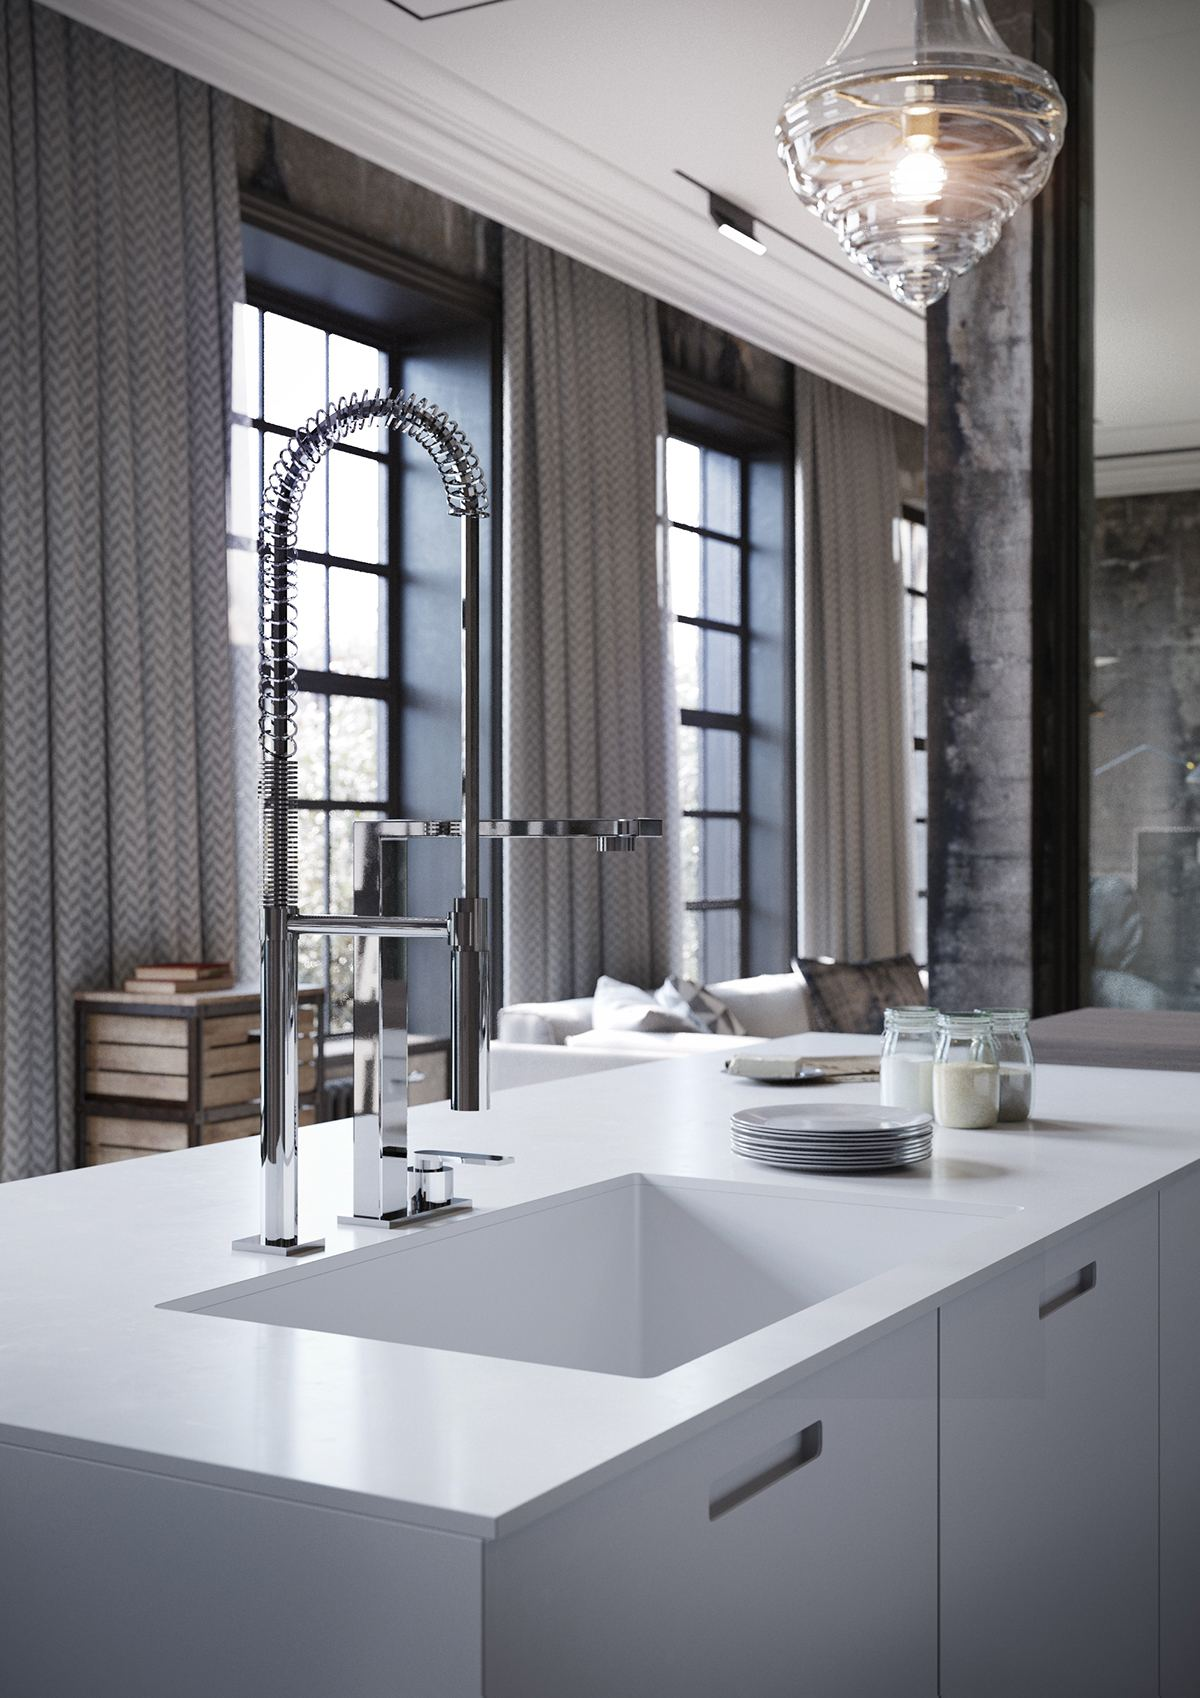 Incredible Luxury Kitchen Fixtures - 2 chic and cozy cosmopolitan lofts